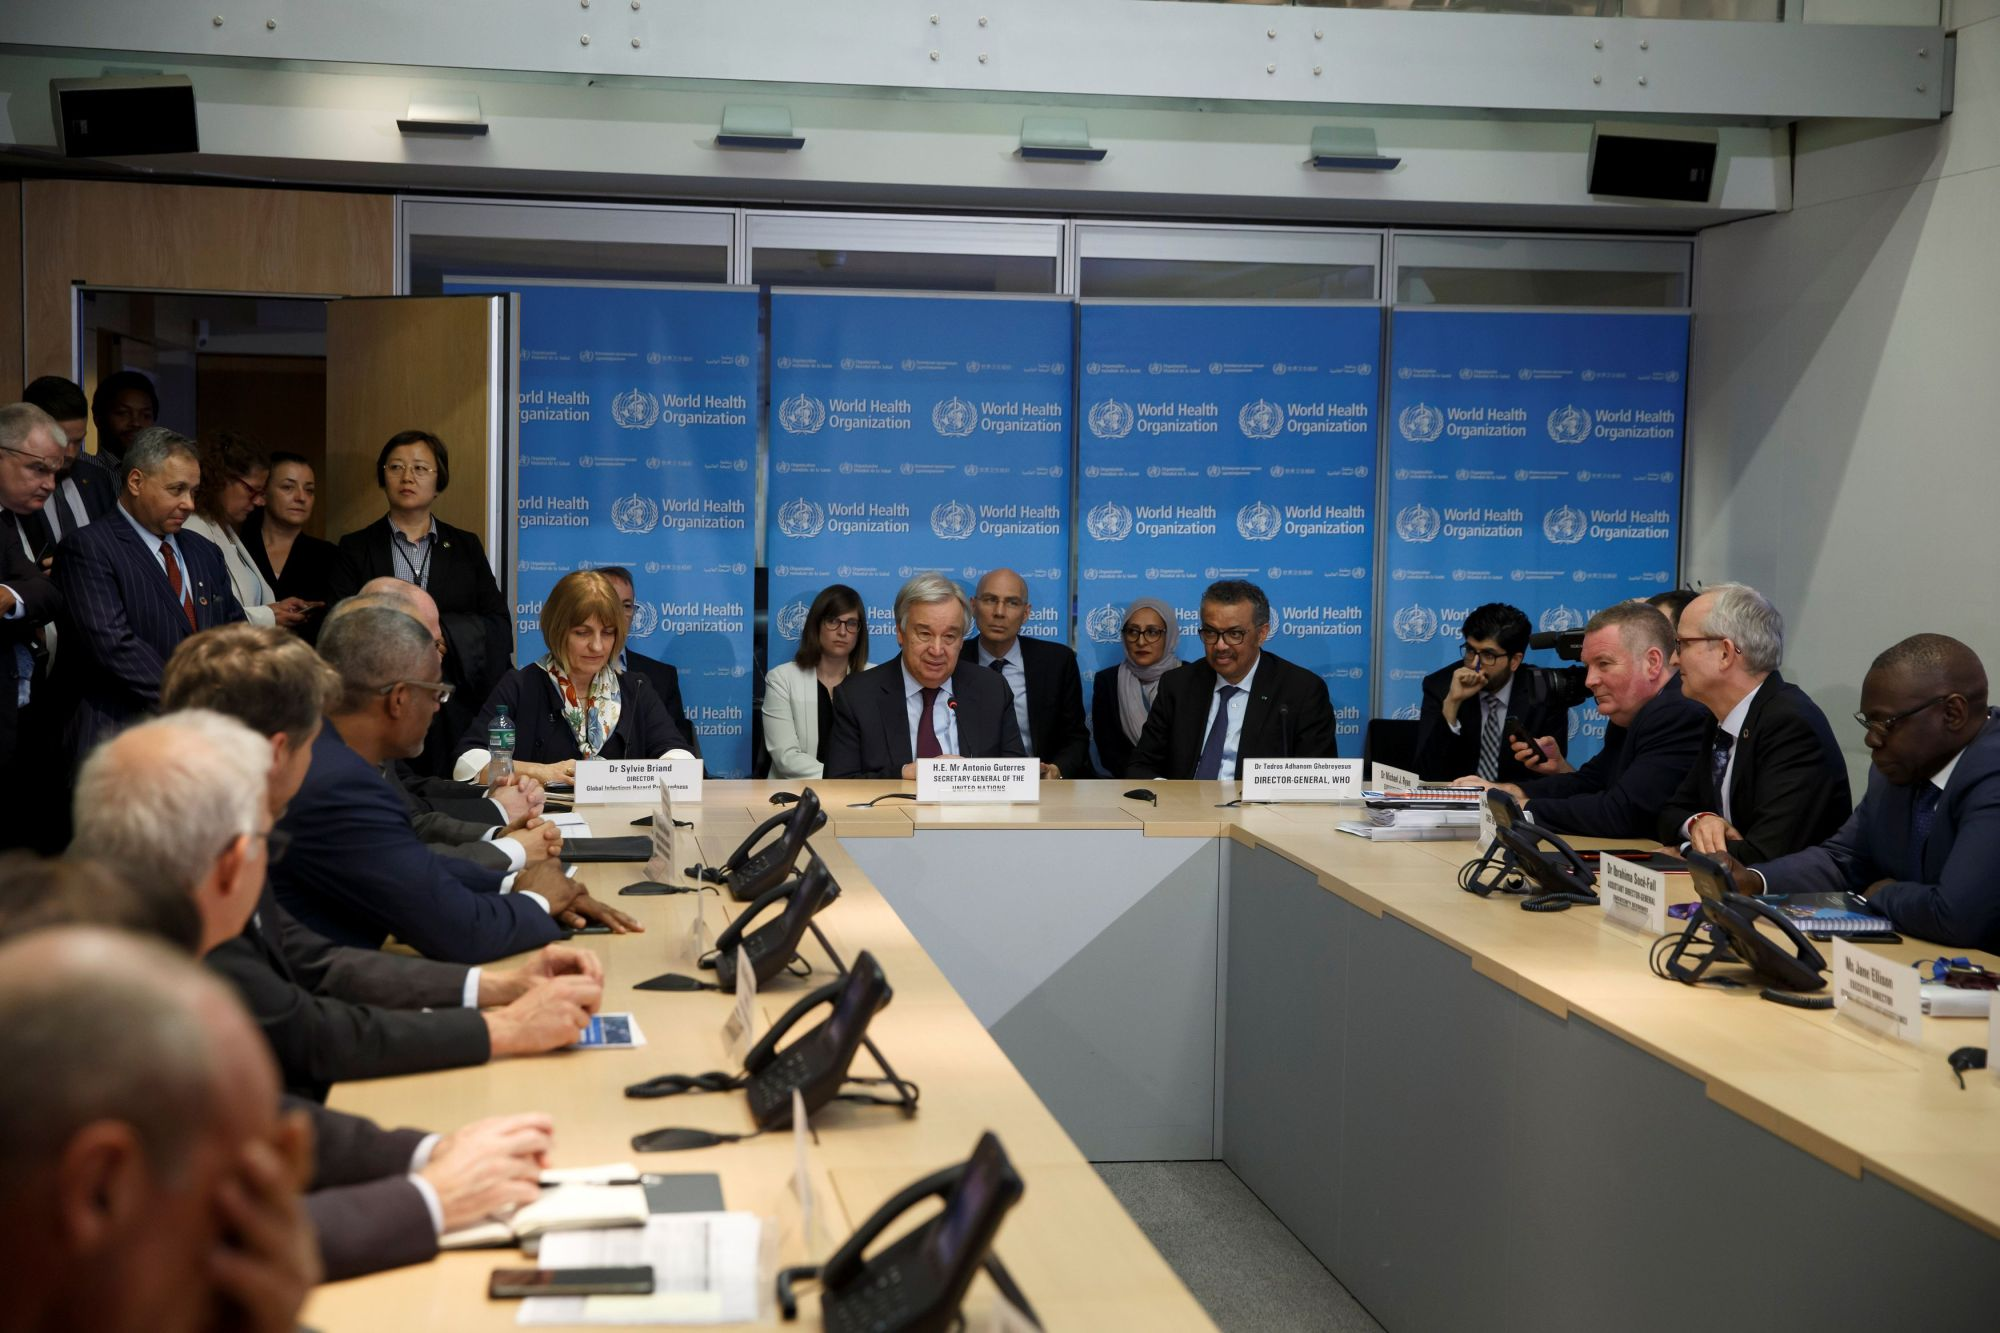 U.N. Secretary General Antonio Guterres speaks while sitting next to Director General of the World Health Organization (WHO) Tedros Adhanom Ghebreyesus during an update on the situation regarding the COVID-19  at the World Health Organization headquarters in Geneva Monday. | SALVATORE DI NOLFI / POOL / VIA REUTERS